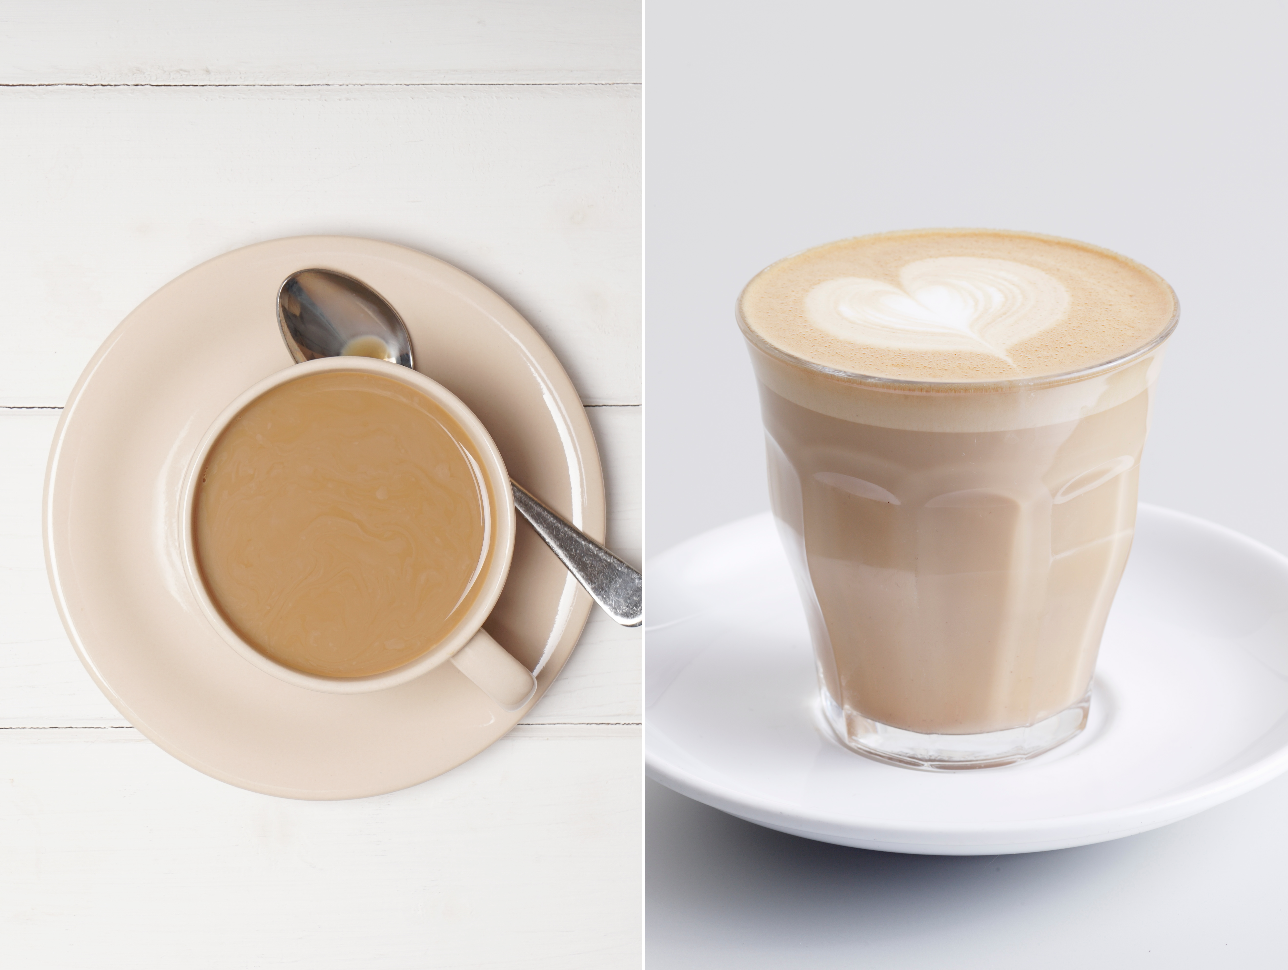 Cafe au Lait vs Latte Getty 10/15/19